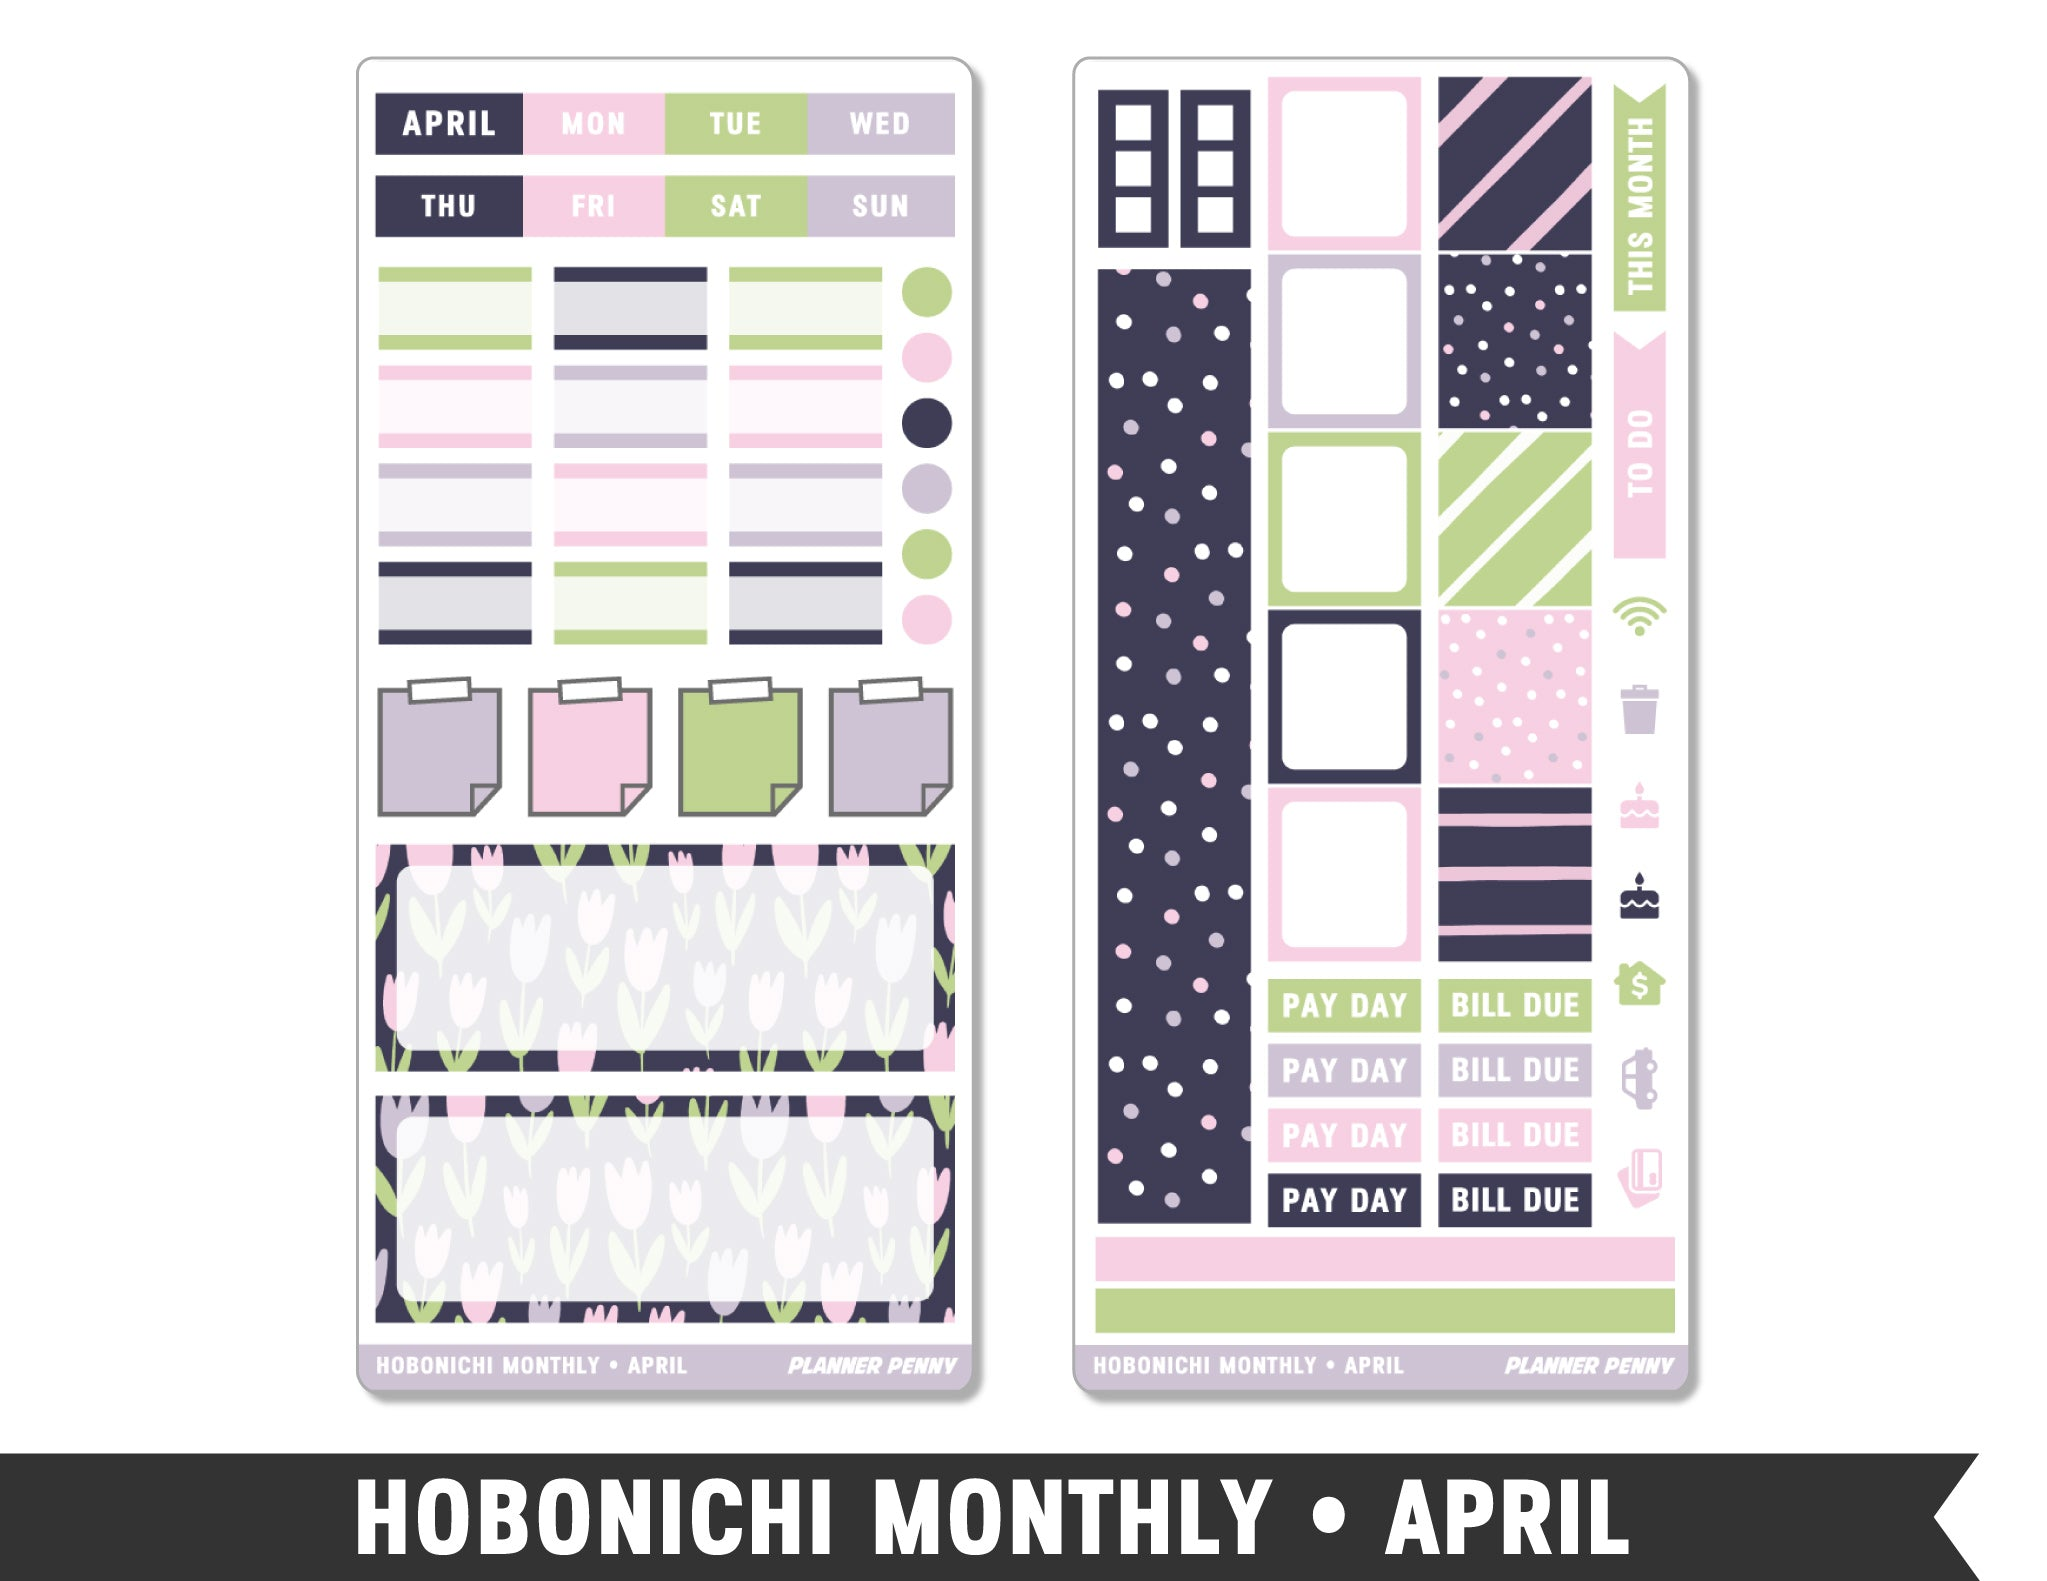 Hobonichi Weeks • April • Monthly Spread Planner Stickers - Planner Penny